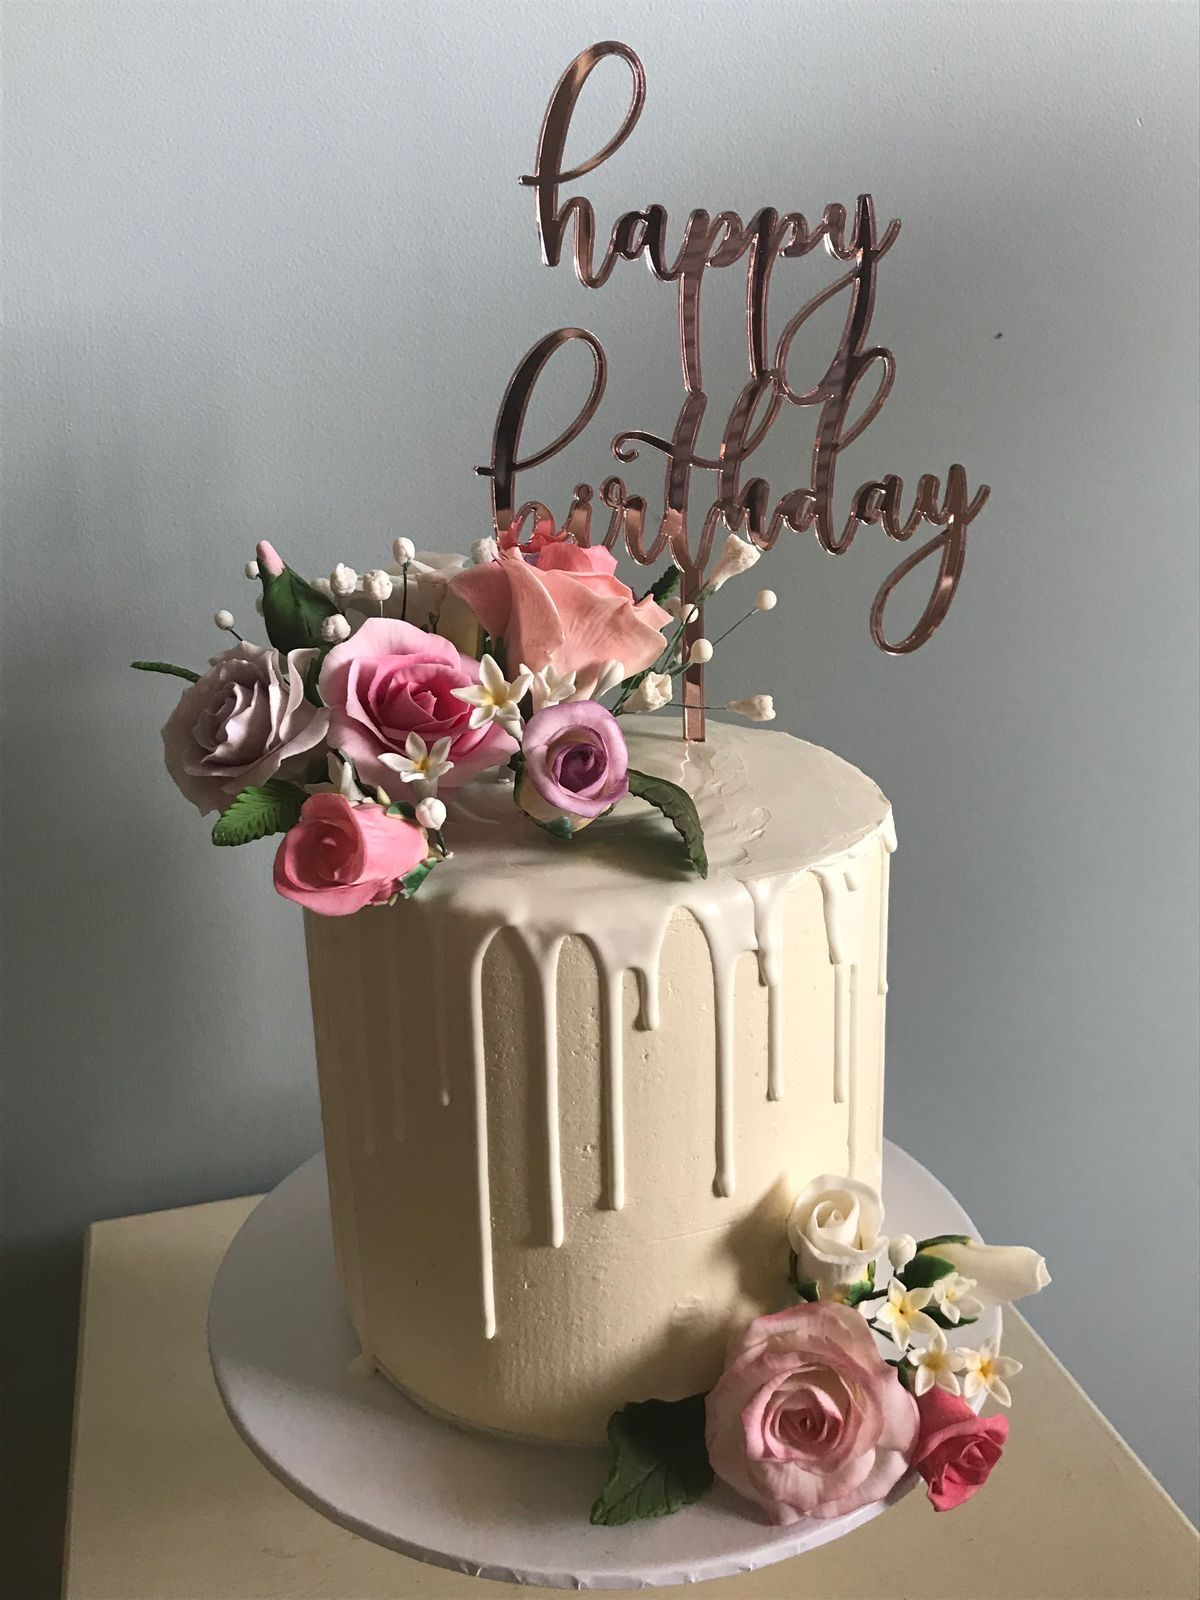 Pin By Iromi De Silva On Cards Birthday Cake With Flowers Best Friend Birthday Cake Happy Birthday Cake Images